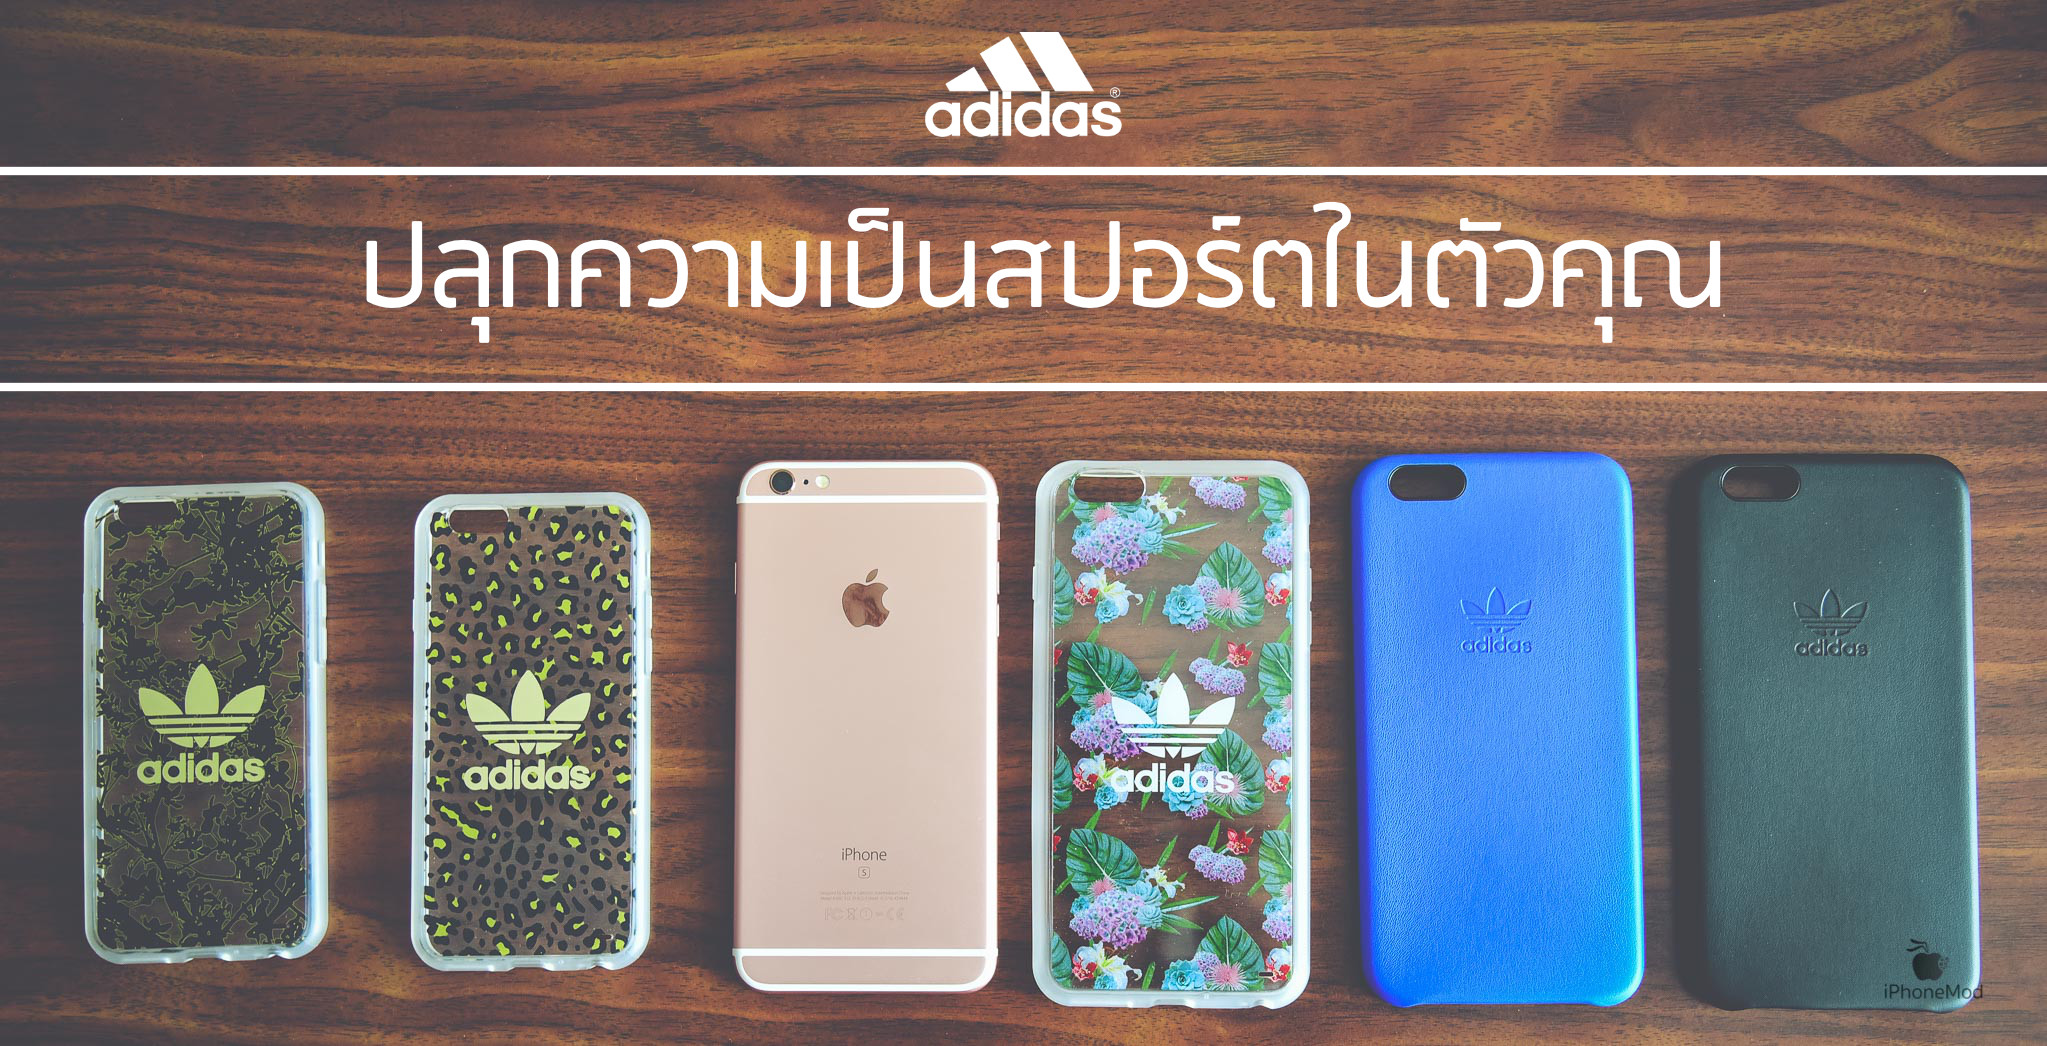 adidas-iphone-case-17-banner